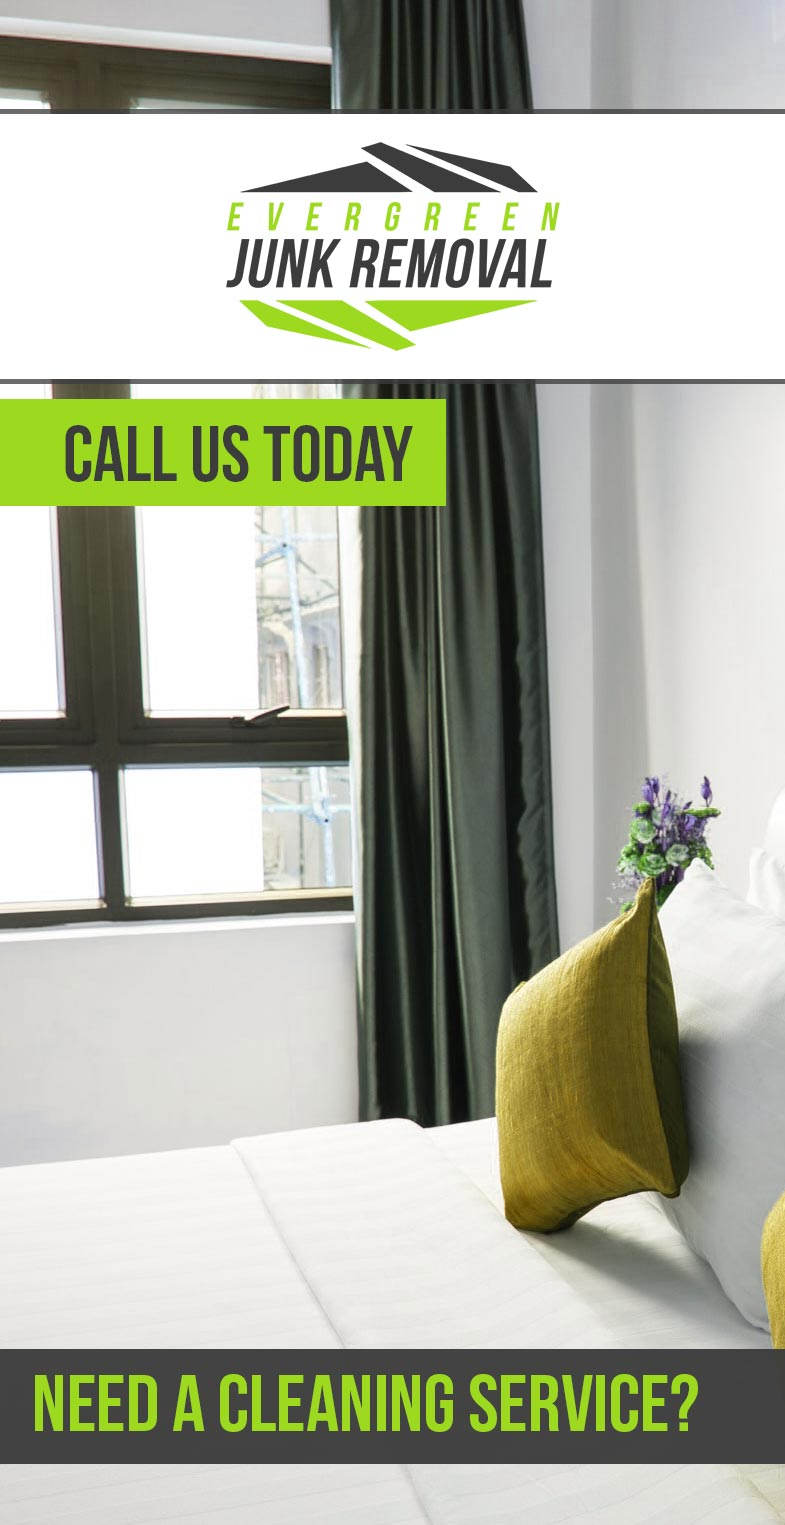 Greenacres Cleaning Services